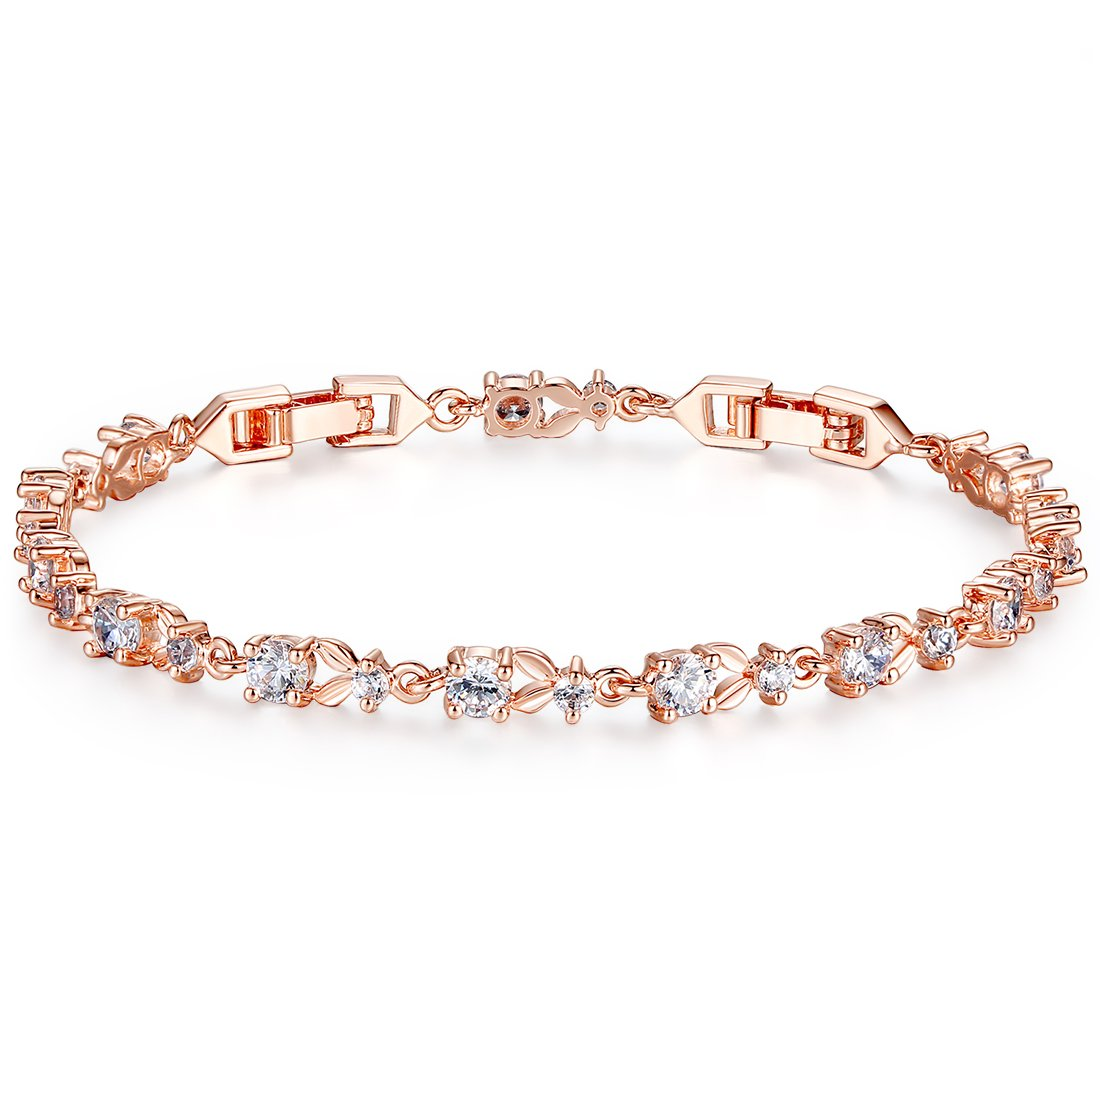 WOSTU Luxury Rose Gold Bracelets with Sparkling Clear Cubic Zirconia CZ Crystal Women Girls Charms Bangle by WOSTU